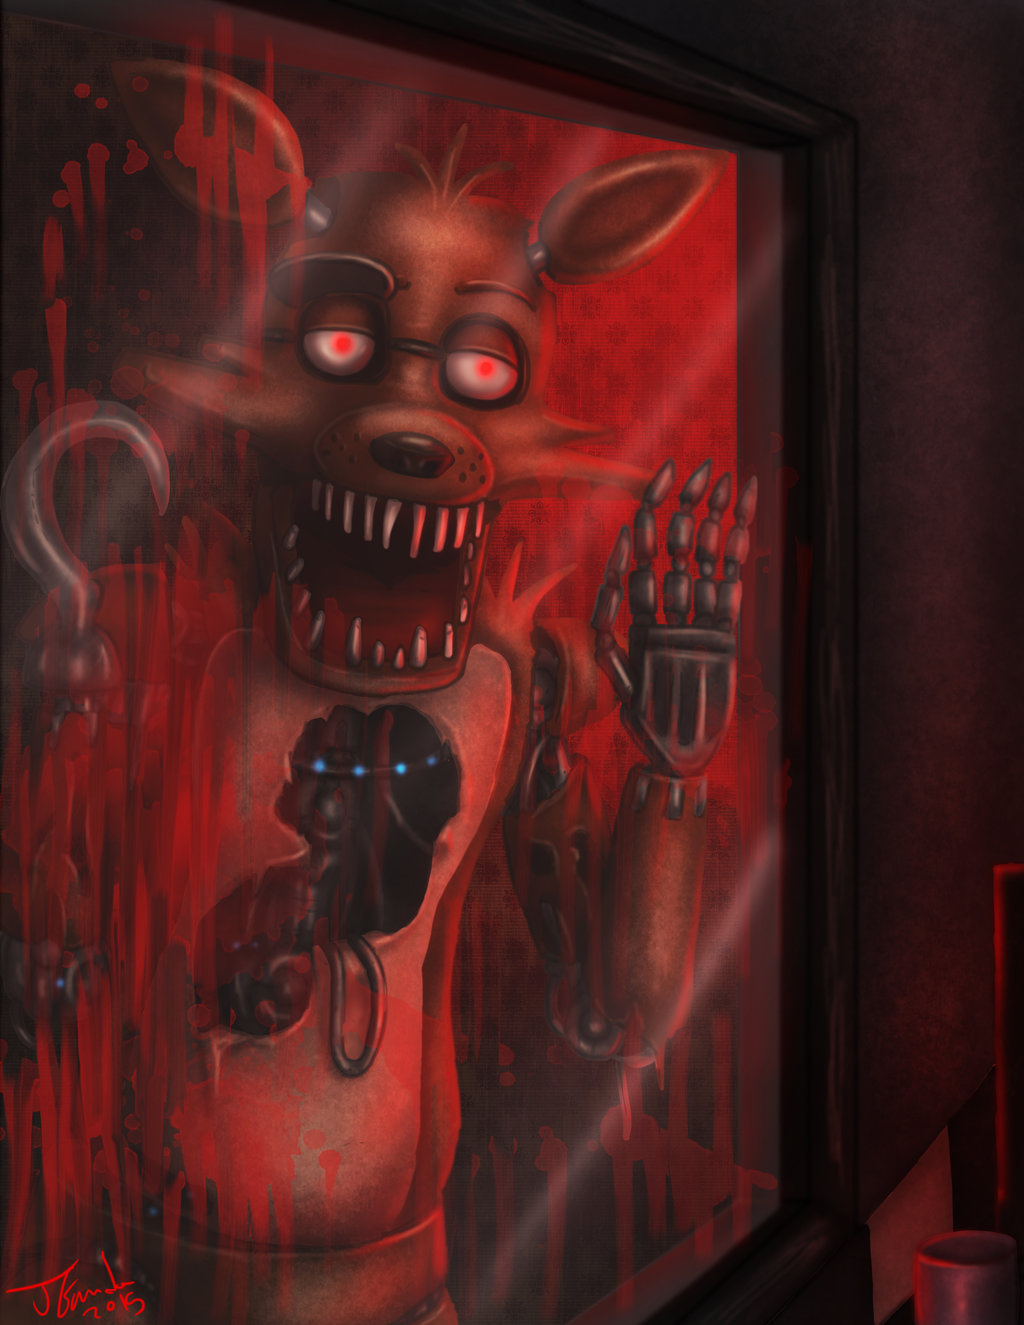 Free Download Fnaf Foxy Wallpaper Fnaf Foxy By Destinyfall 1024x1325 For Your Desktop Mobile Tablet Explore 50 Fnaf Wallpaper Foxy Fnaf Wallpaper Bonnie Awesome Fnaf Wallpapers Fnaf Wallpaper For Pc